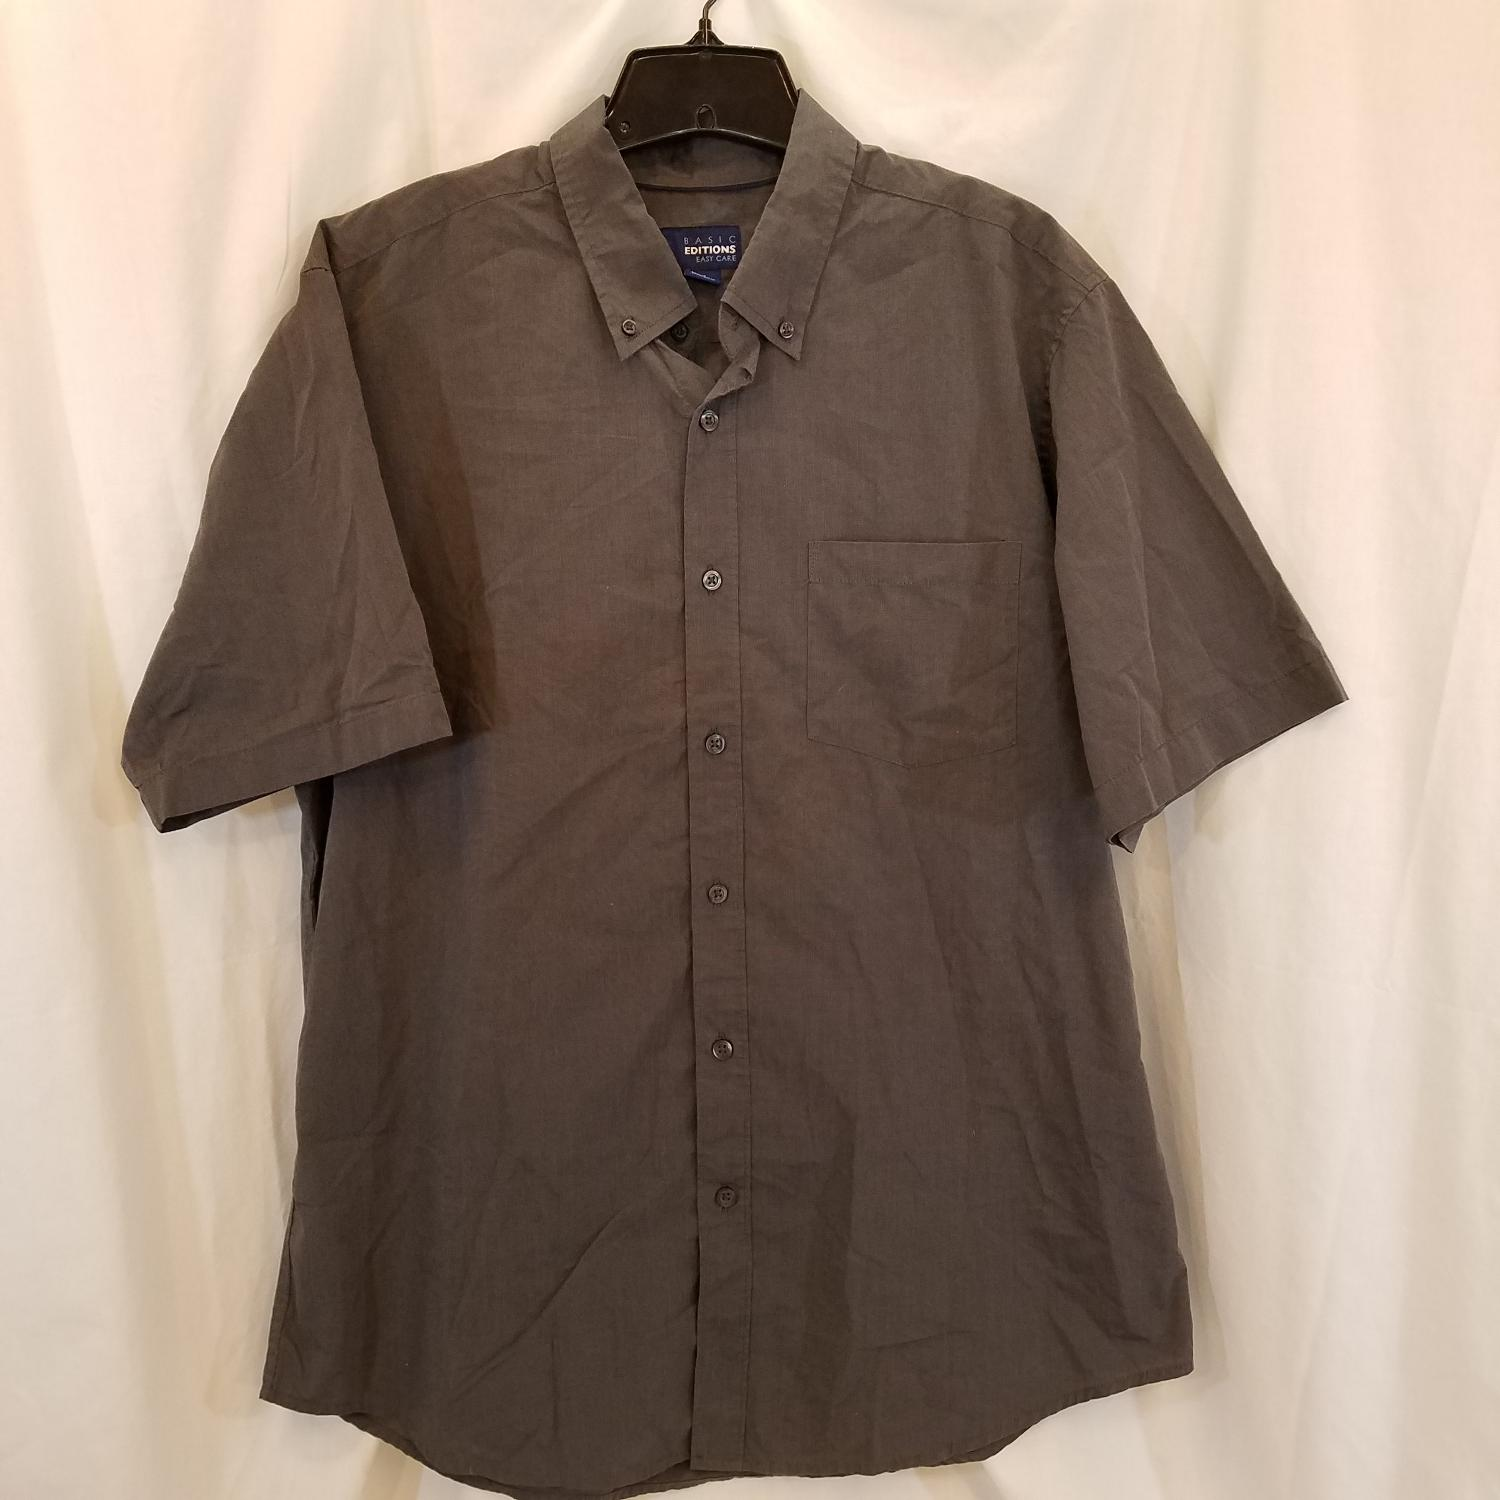 be39c3d49798 Best Mens Short Sleeve Button Down Shirt By Basic Editions